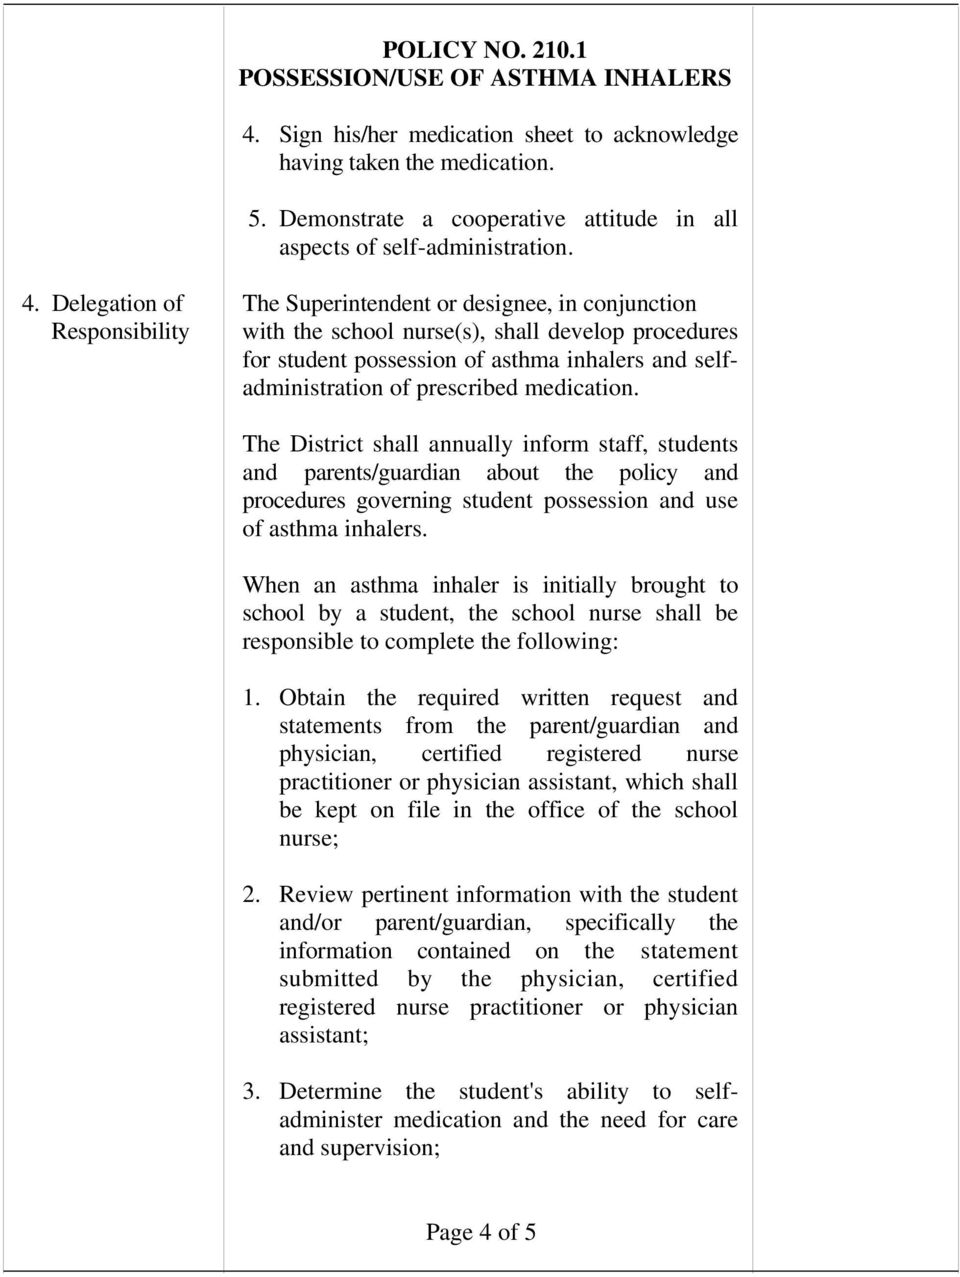 Delegation of The Superintendent or designee, in conjunction Responsibility with the school nurse(s), shall develop procedures for student possession of asthma inhalers and selfadministration of